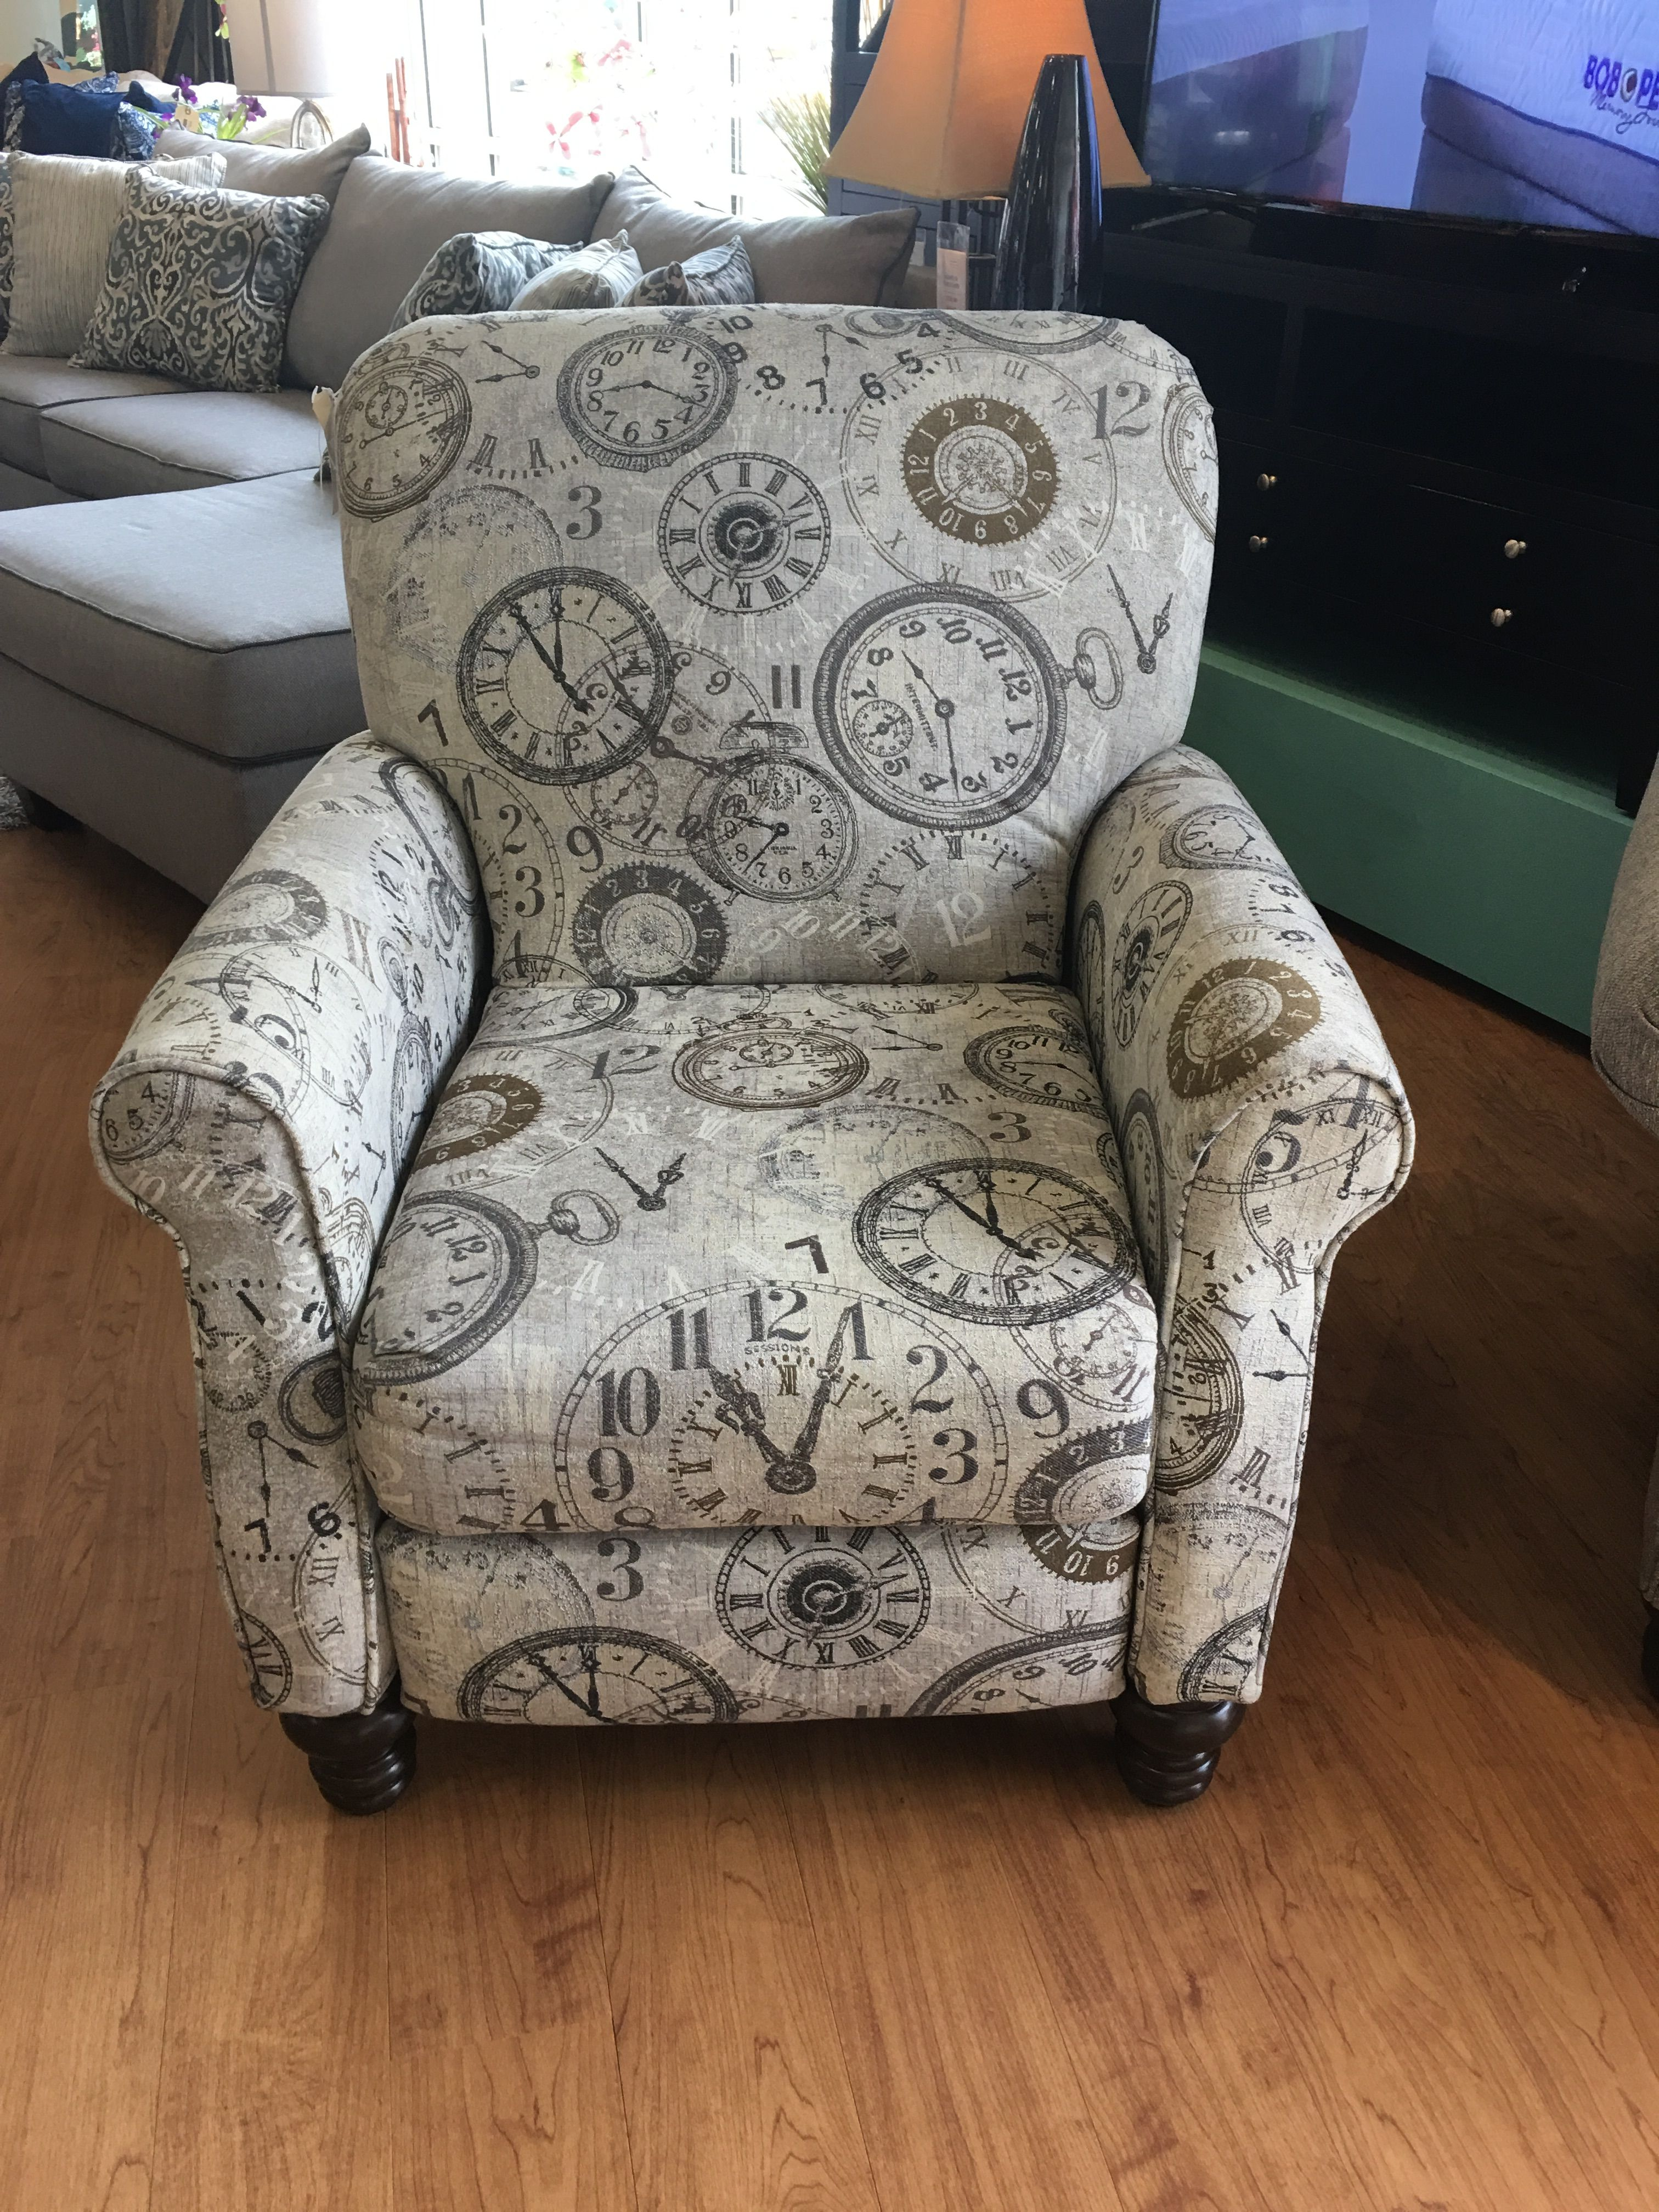 I Know Quot It S A Lot Of Look Quot But This Chair Spoke To Me I